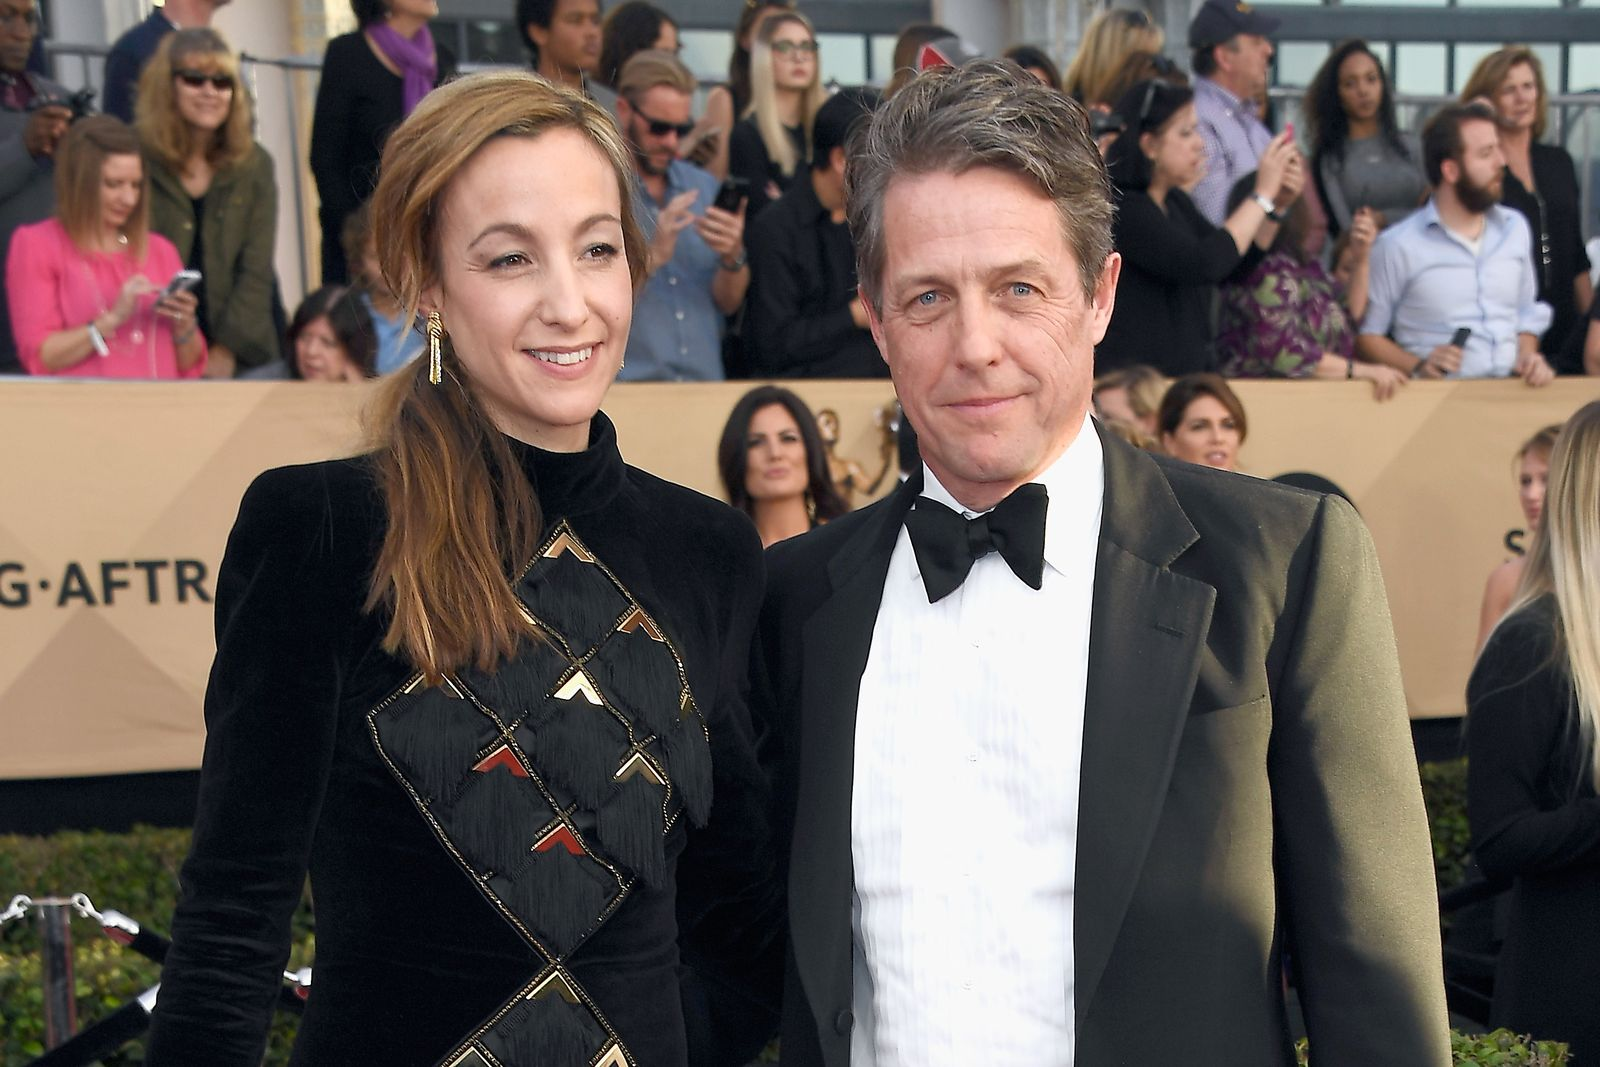 Anna Eberstein and actor Hugh Grant at the 23rd Annual Screen Actors Guild Awards at The Shrine Auditorium on January 29, 2017 | Photo: Getty Images